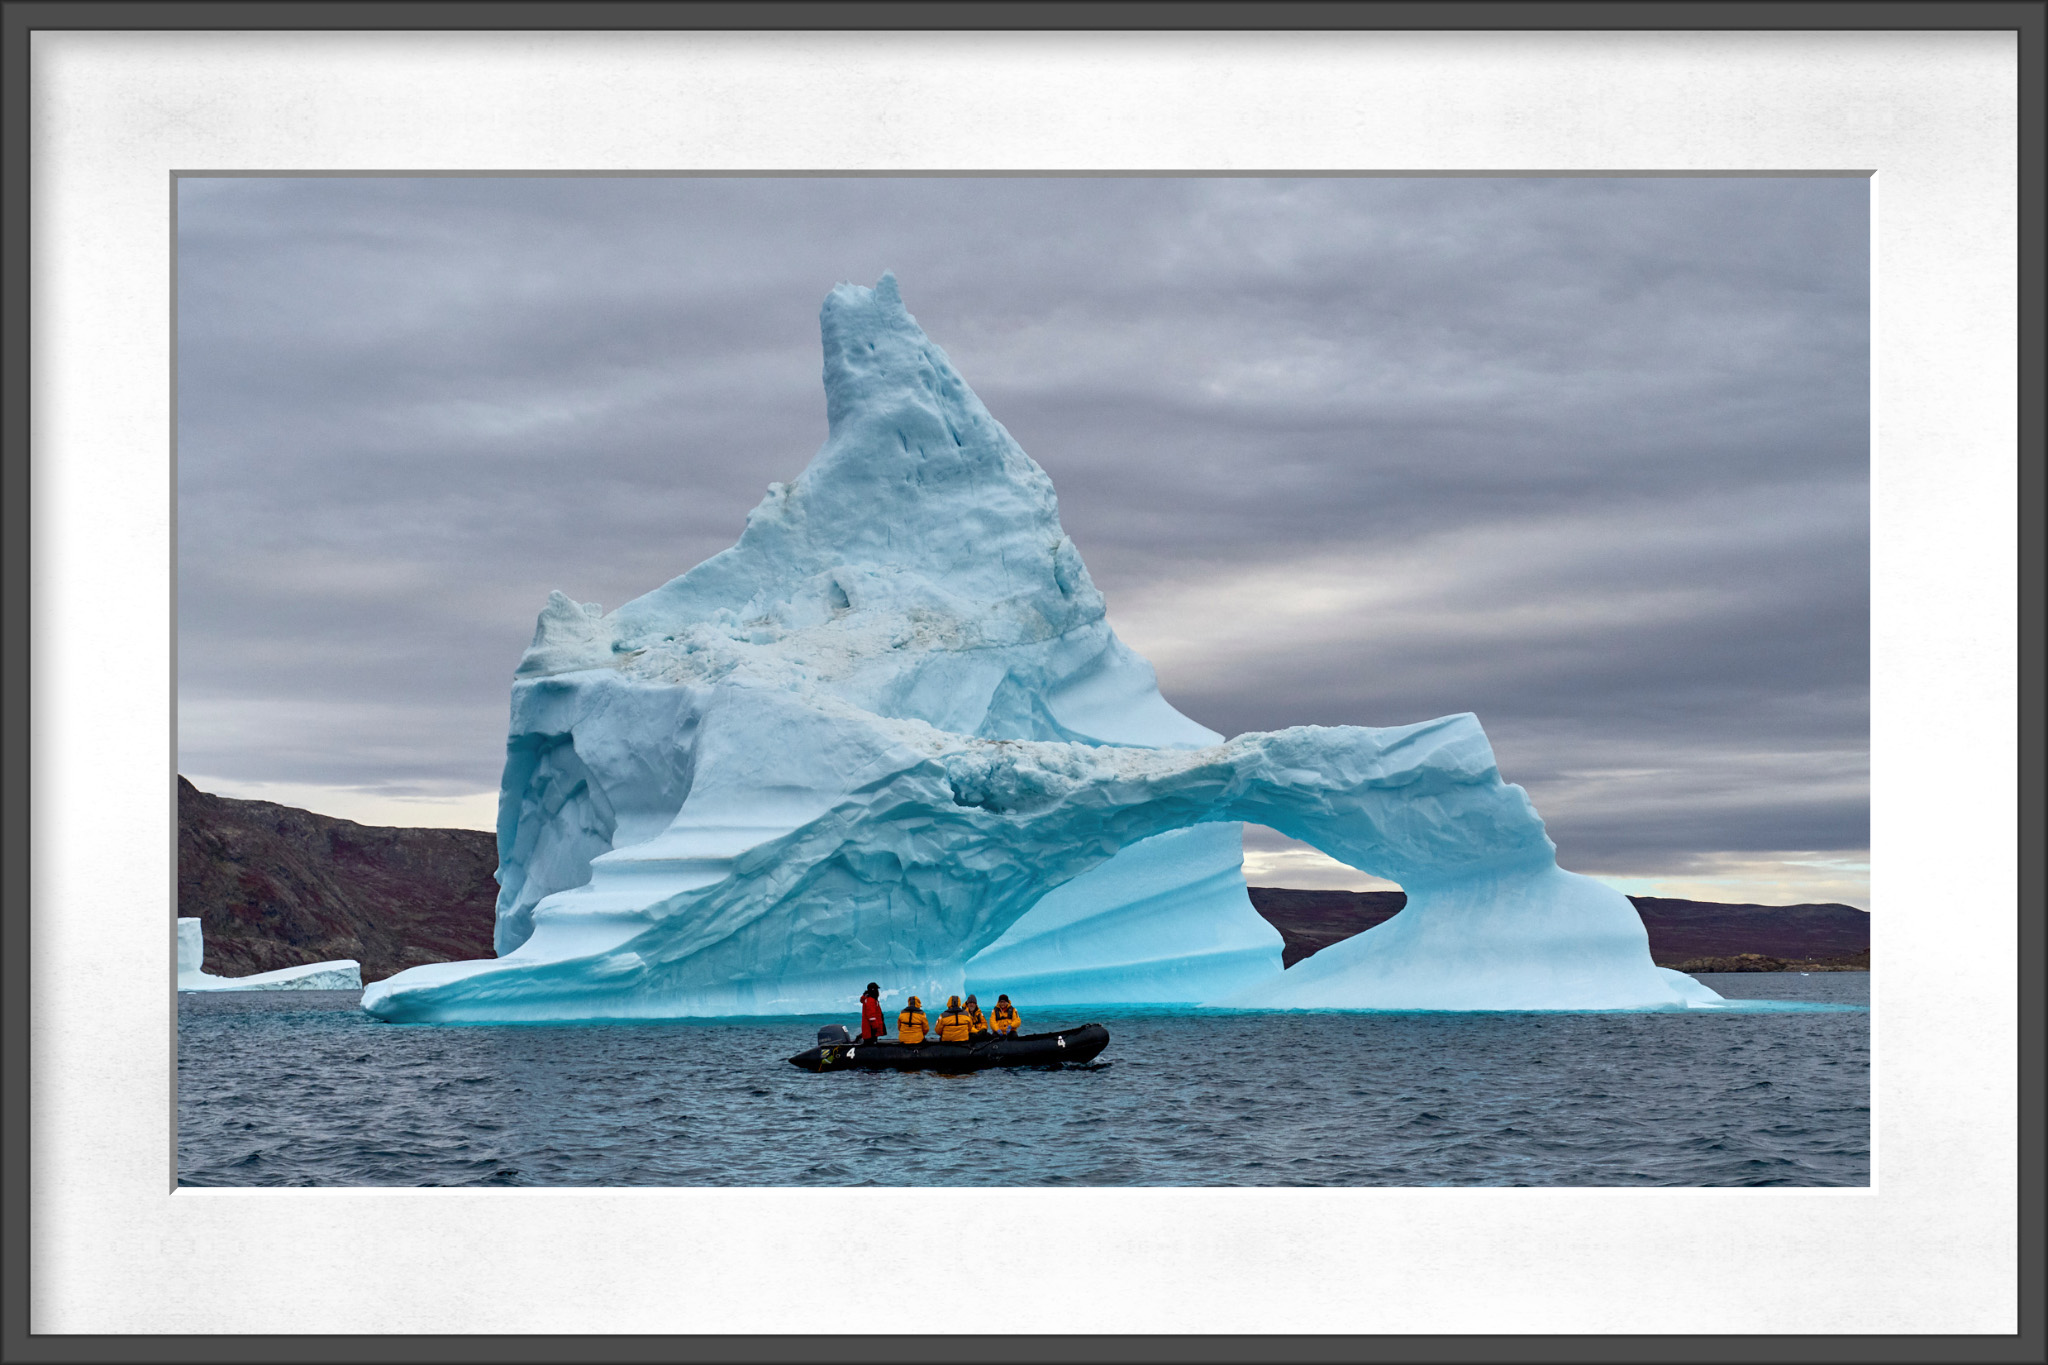 One of our Zodiacs cruising by a large iceberg